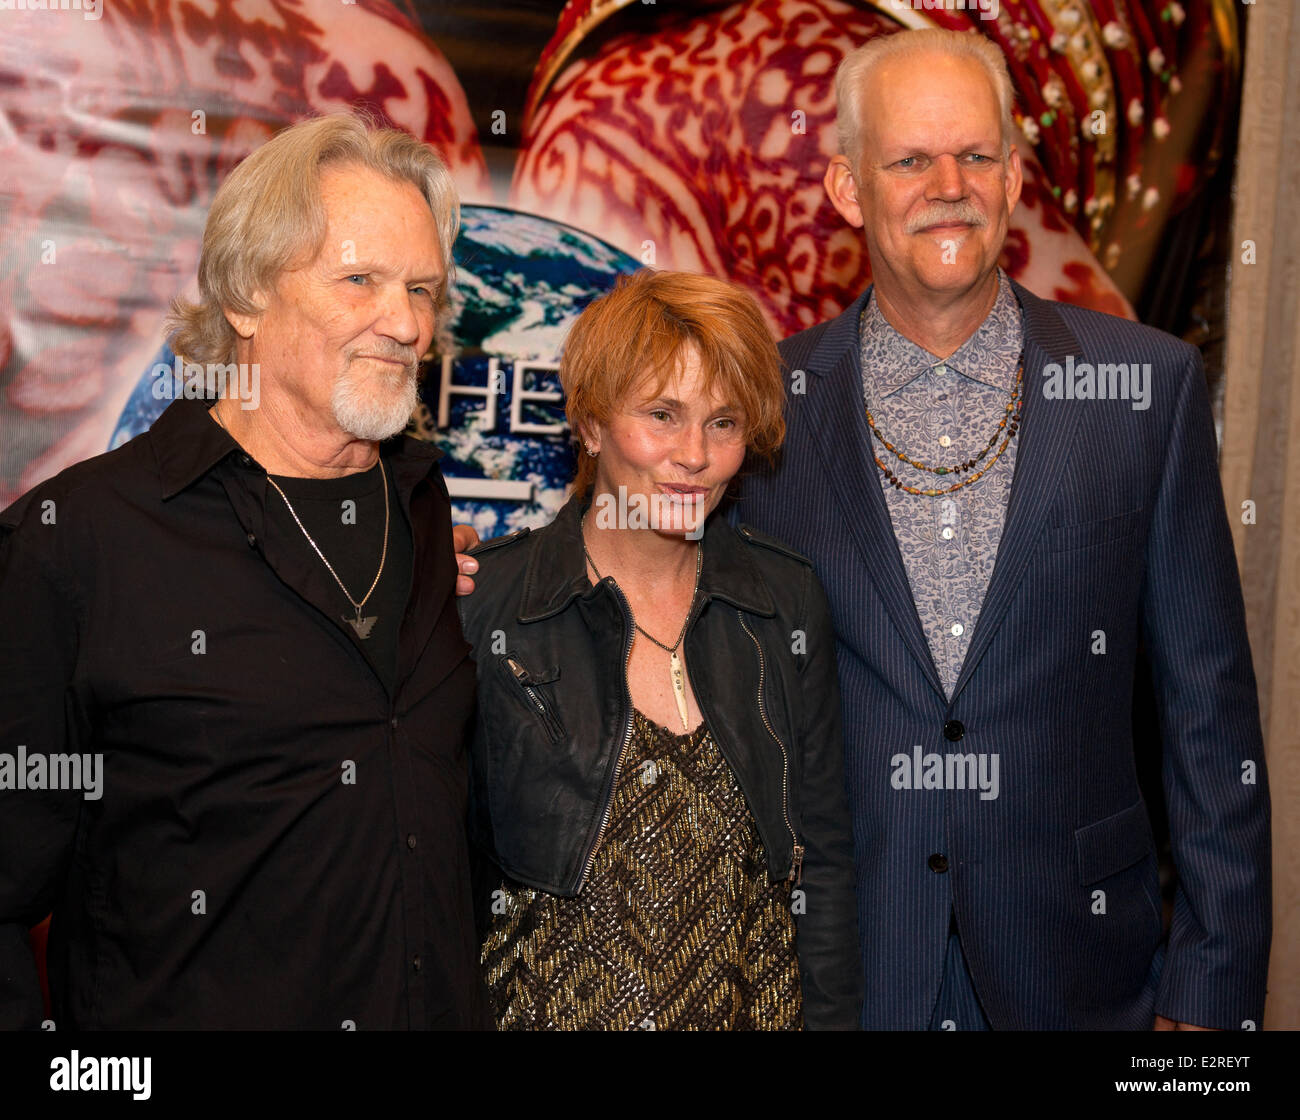 The Nobelity Project Dinner at the Four Seasons - Arrivals  Featuring: Kris Kristofferson,Shawn Colvin,Turk Pipkin - Stock Image